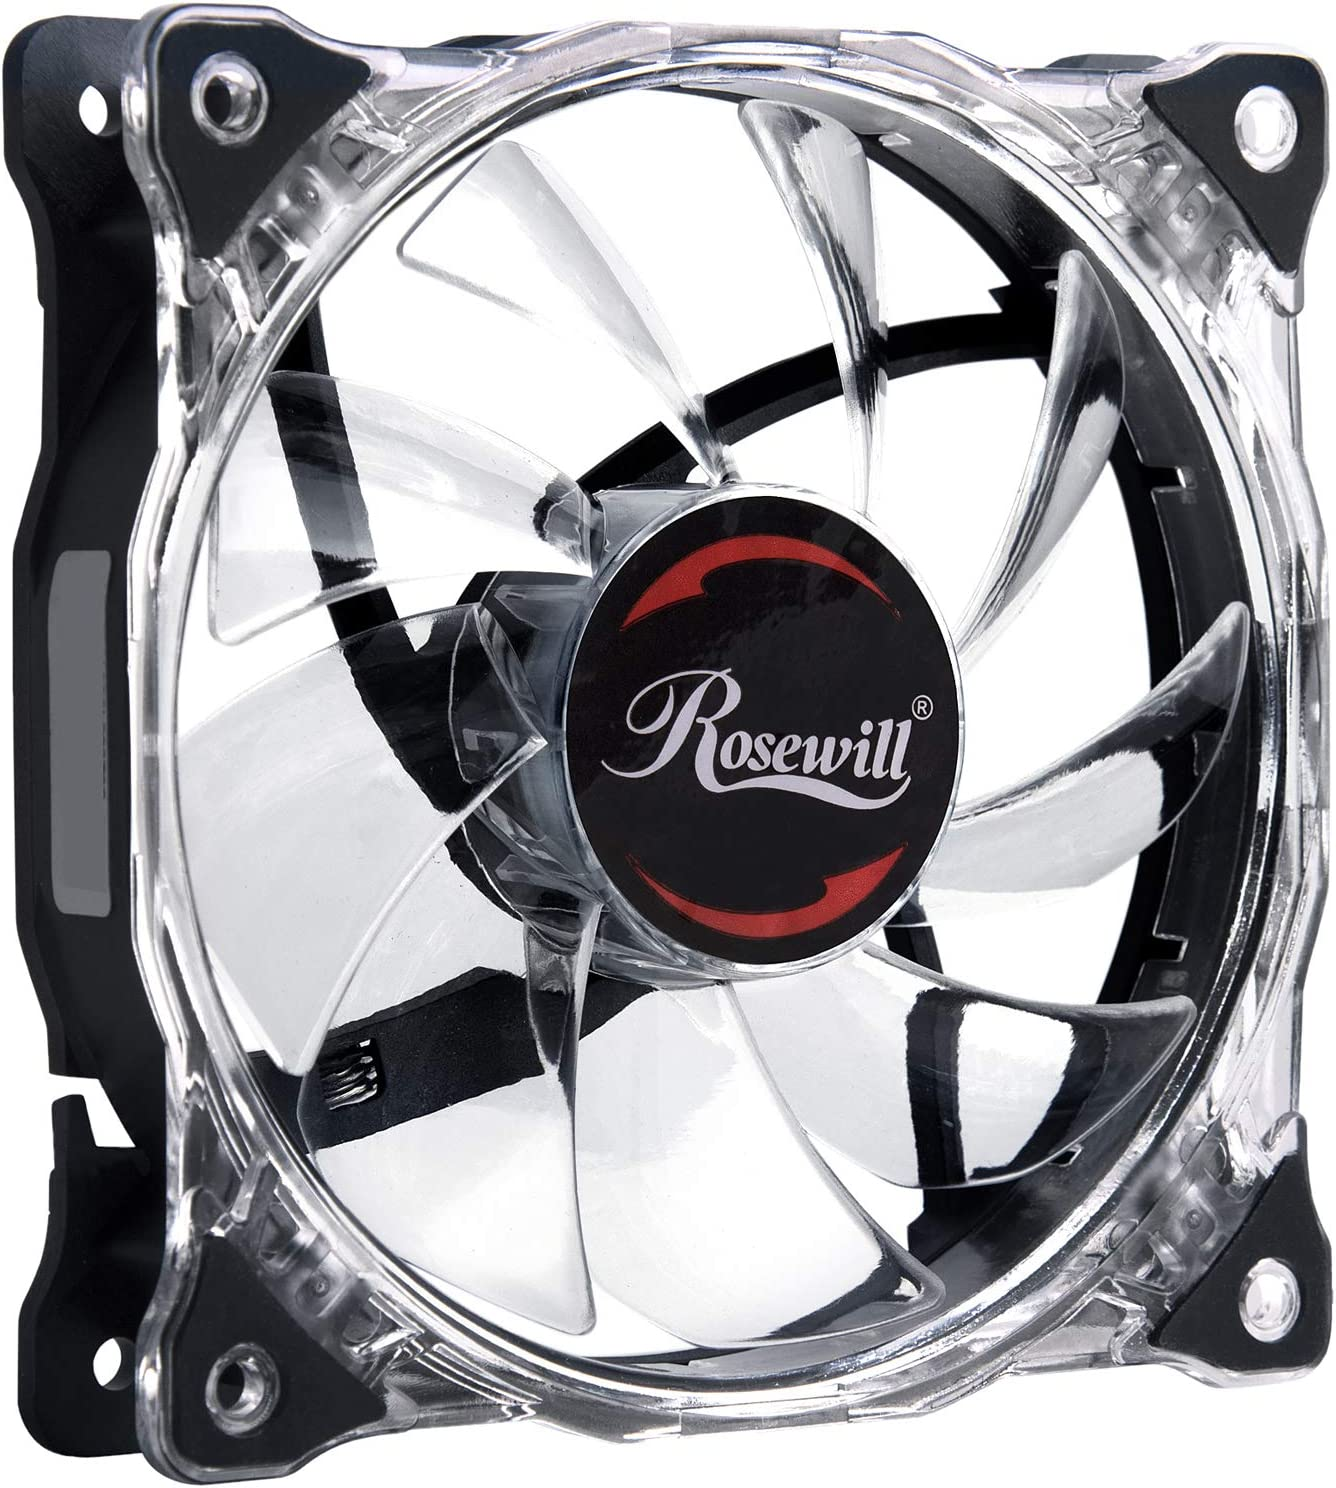 Rosewill 120mm CULLINAN Computer Case Cooling Fan with LP4 Adapter Semi-Transparent Frame /& Blue LED Lights Silent RFA-120-WL Sleeve Bearing